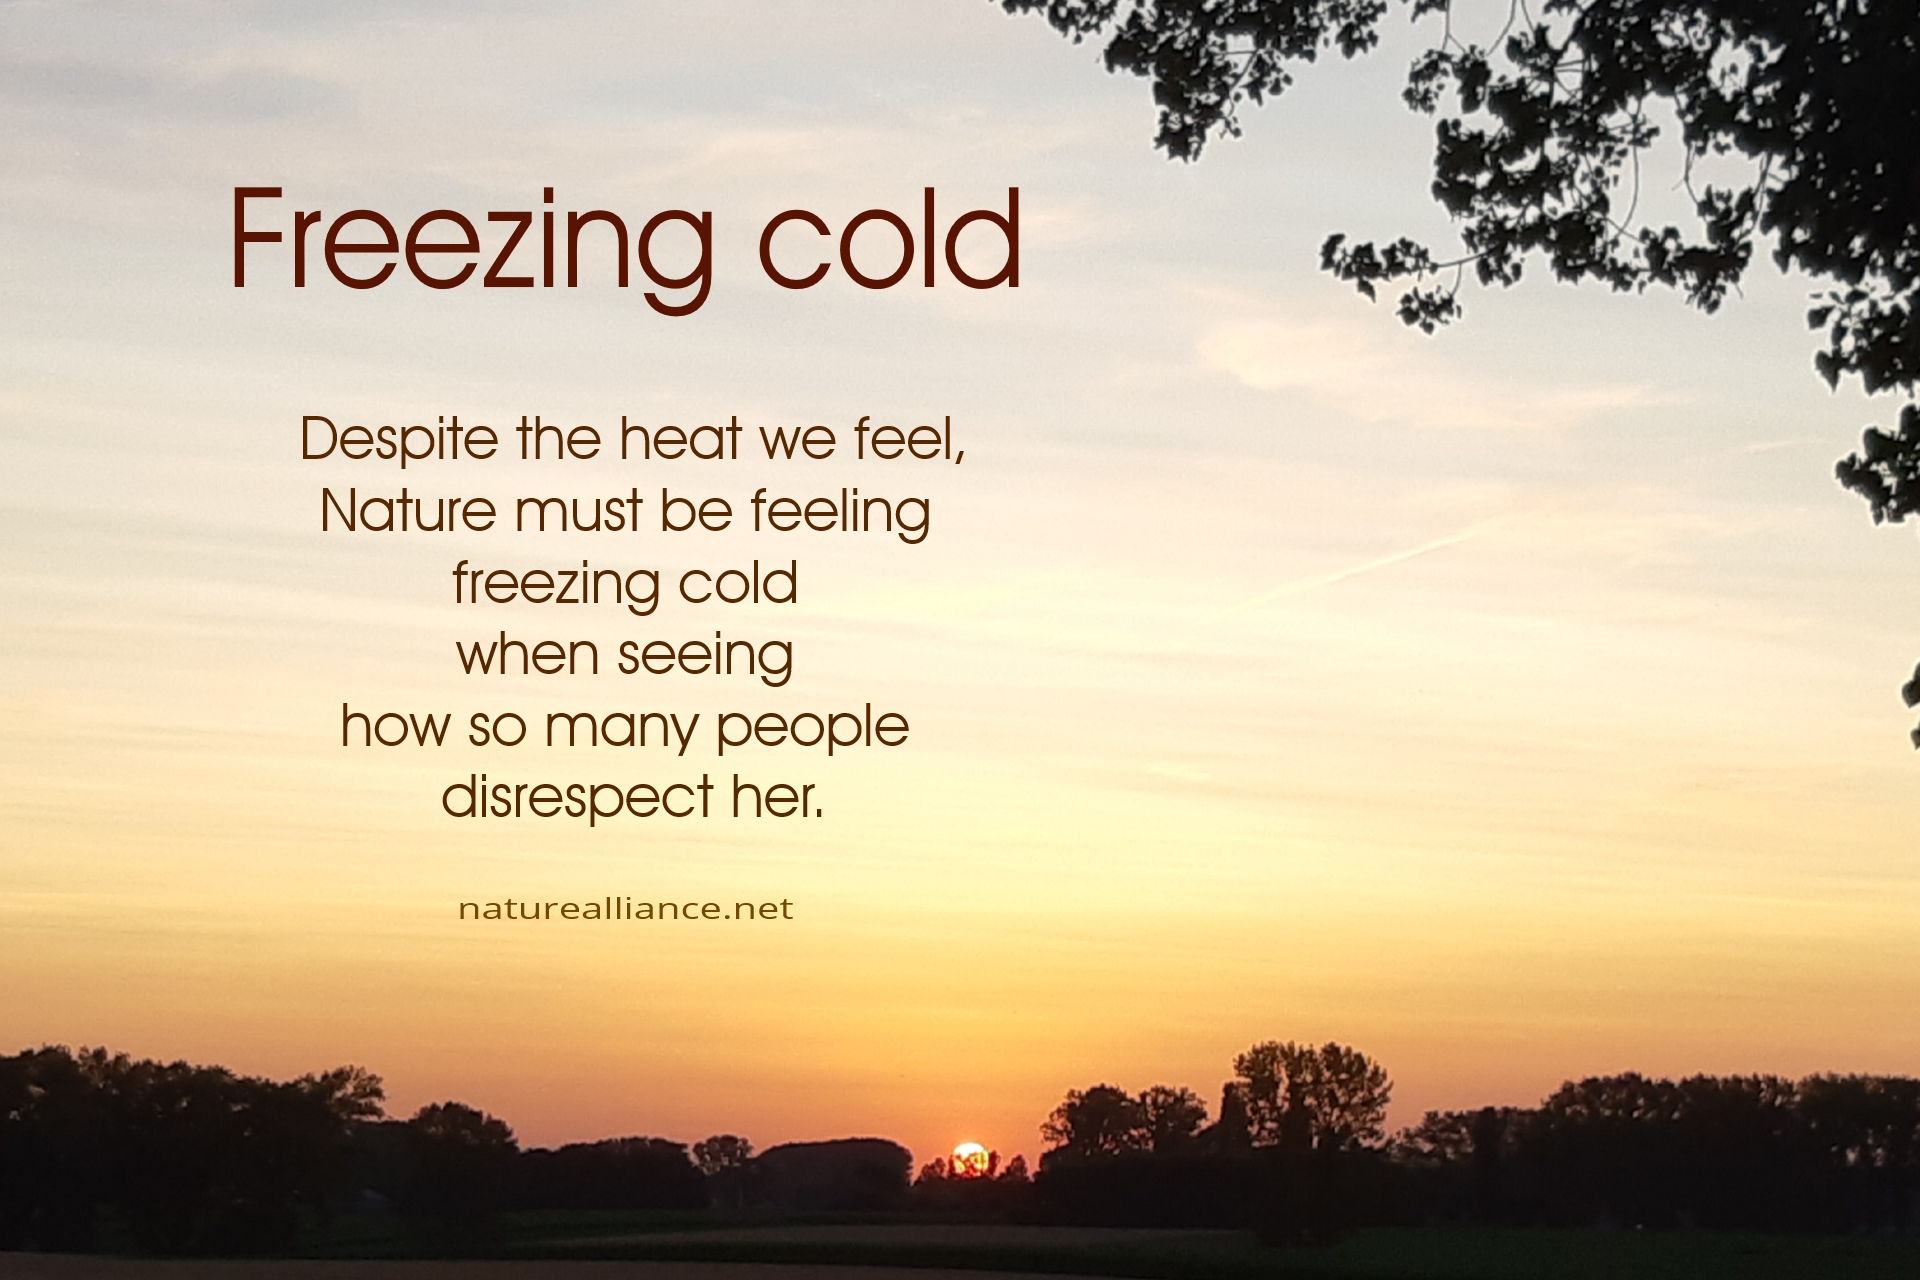 Freezing cold